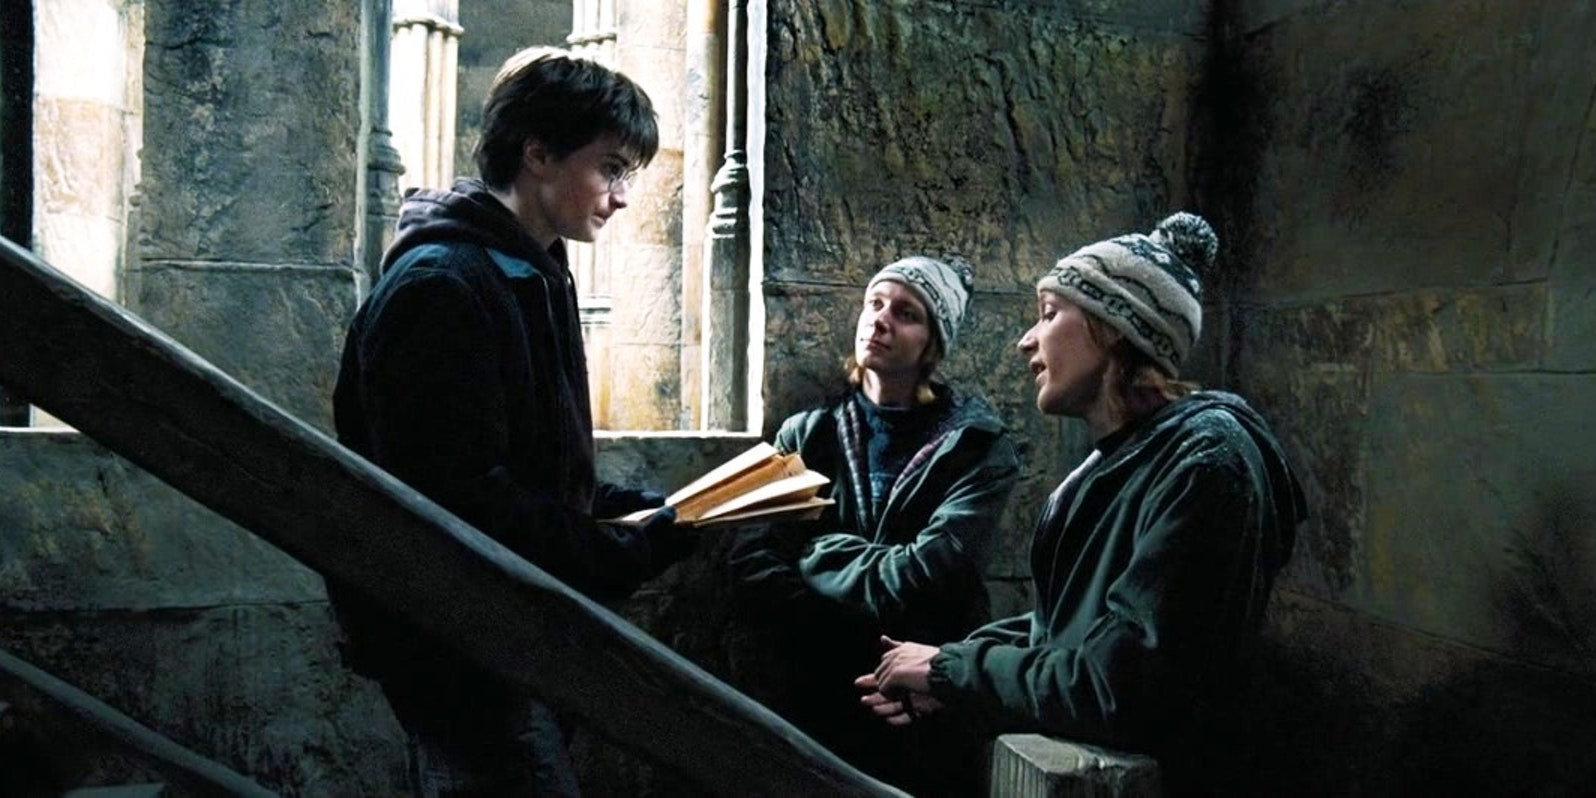 Harry Potter with Fred and George Weasley and the Marauder's Map in 'Harry Potter and the Prisoner of Azkaban'